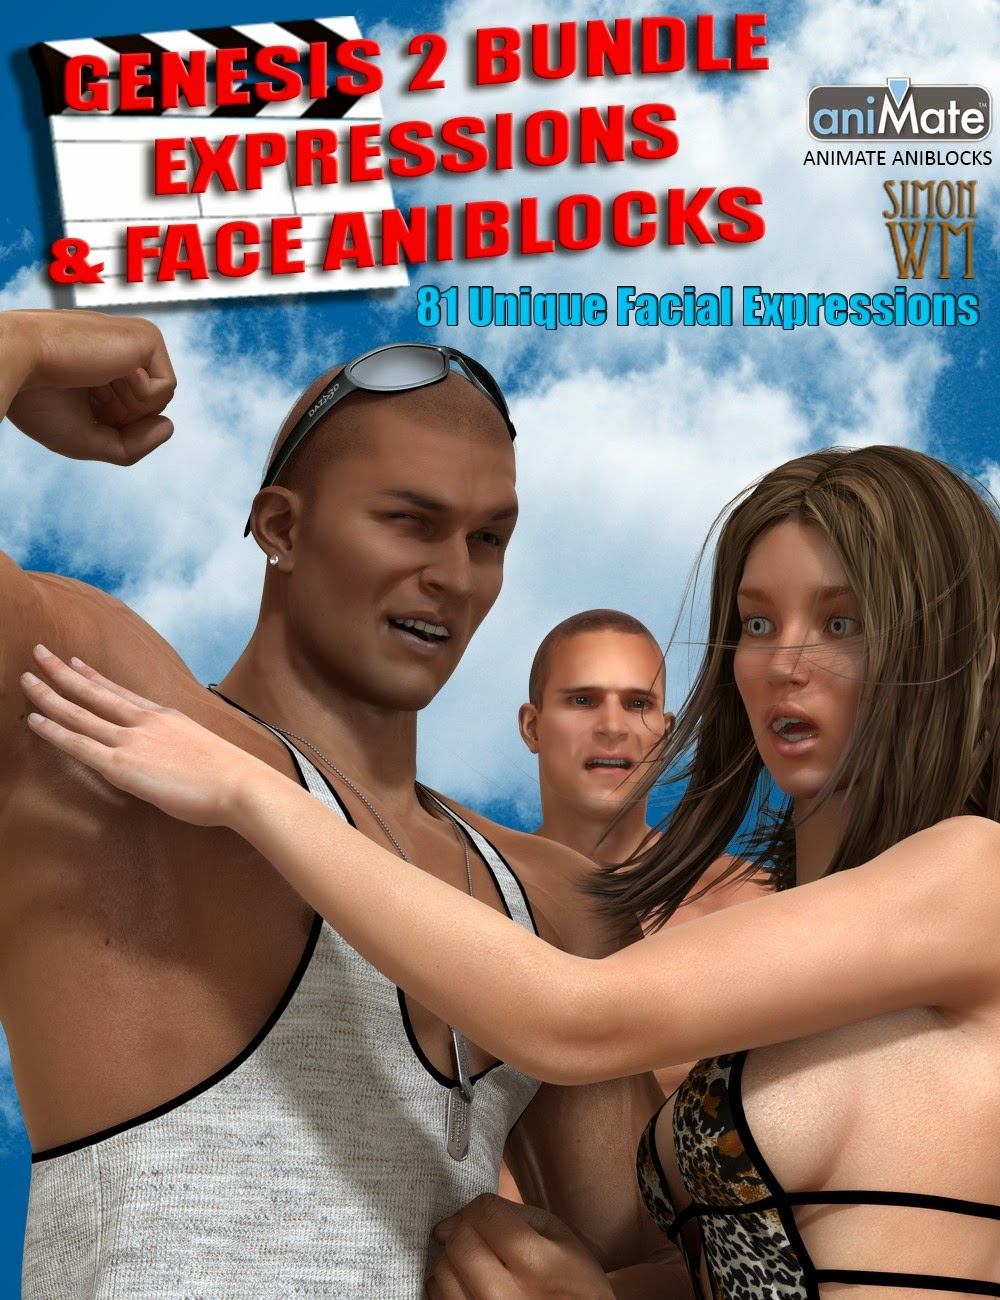 3d Models - Genesis 2 Bundle Expressions & Face aniBlocks